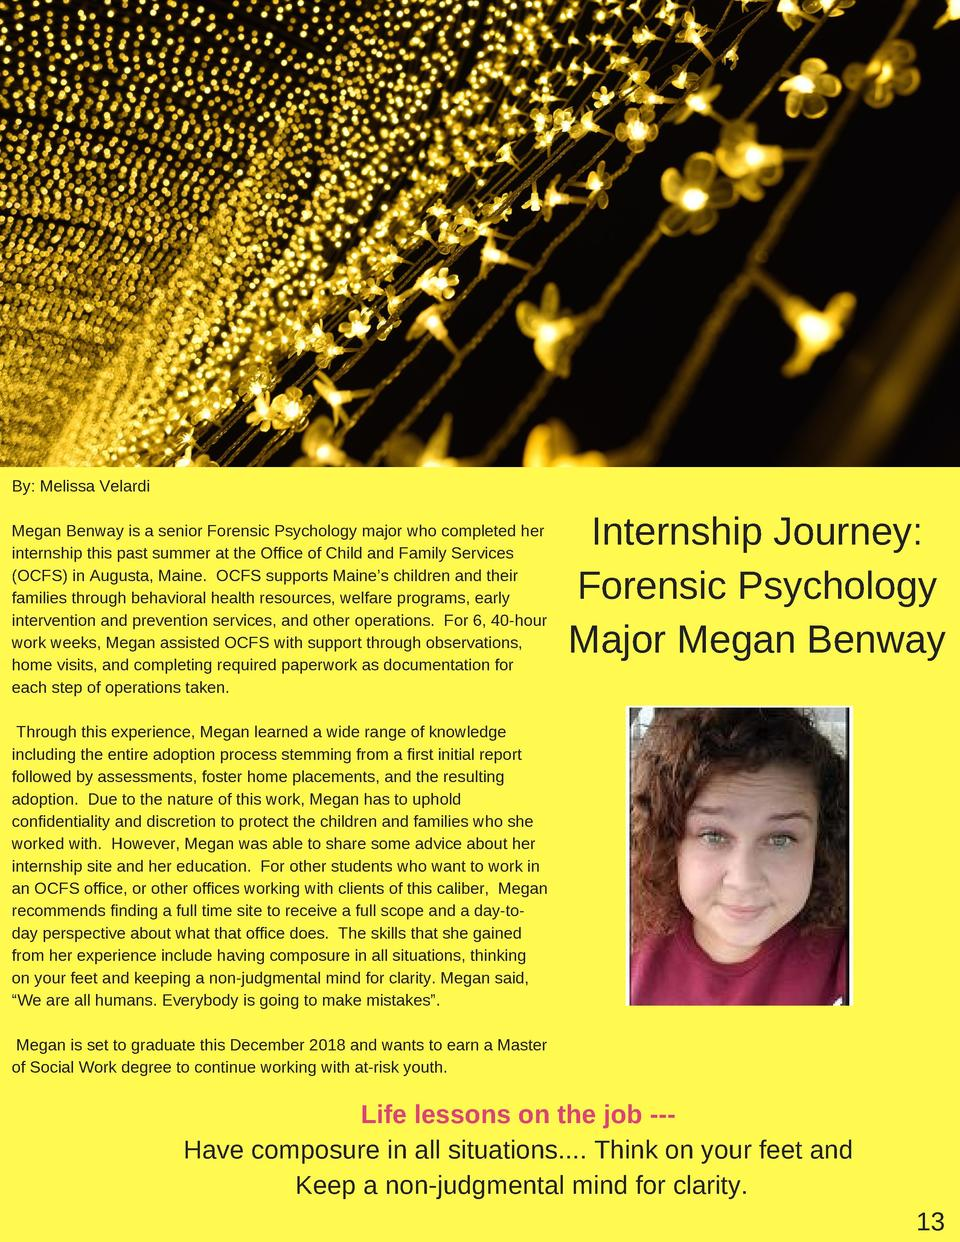 By  Melissa Velardi Megan Benway is a senior Forensic Psychology major who completed her internship this past summer at th...